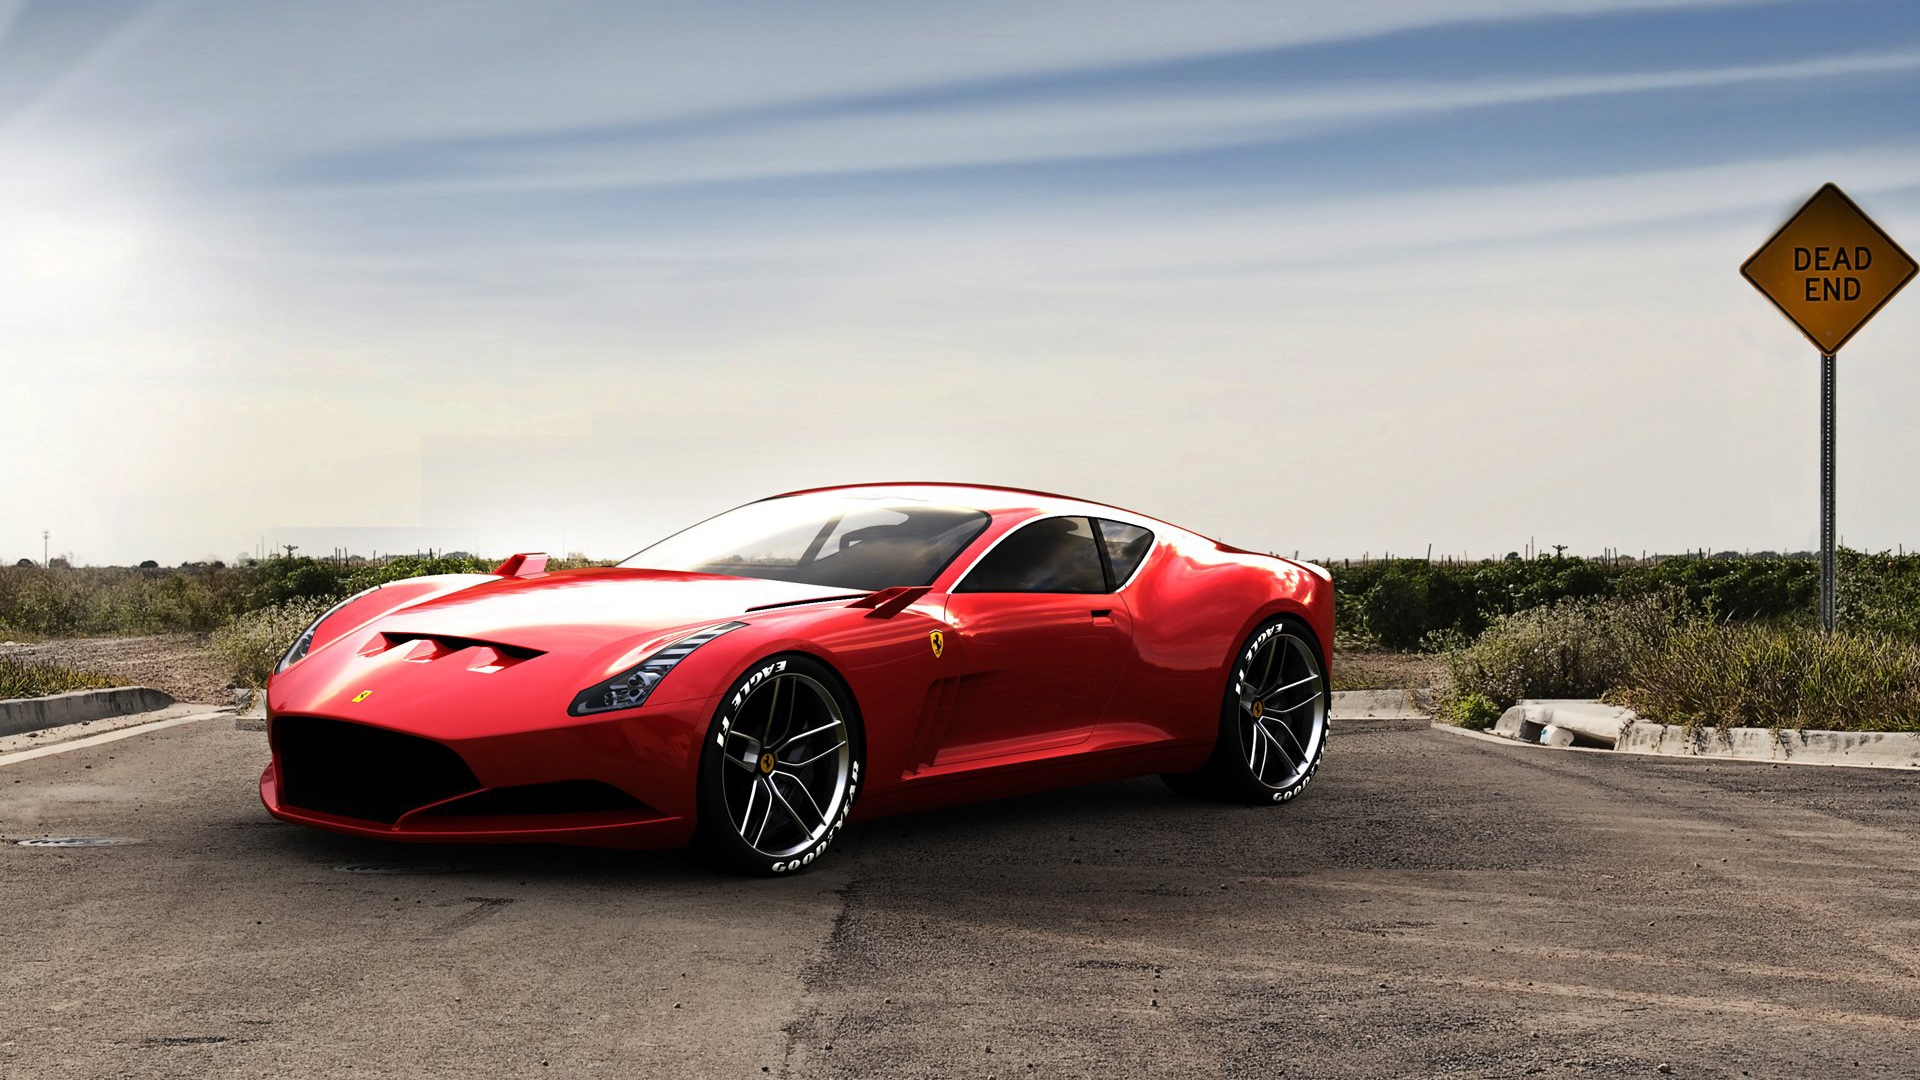 42 hd ferrari wallpapers for free download - Sports car pictures download ...